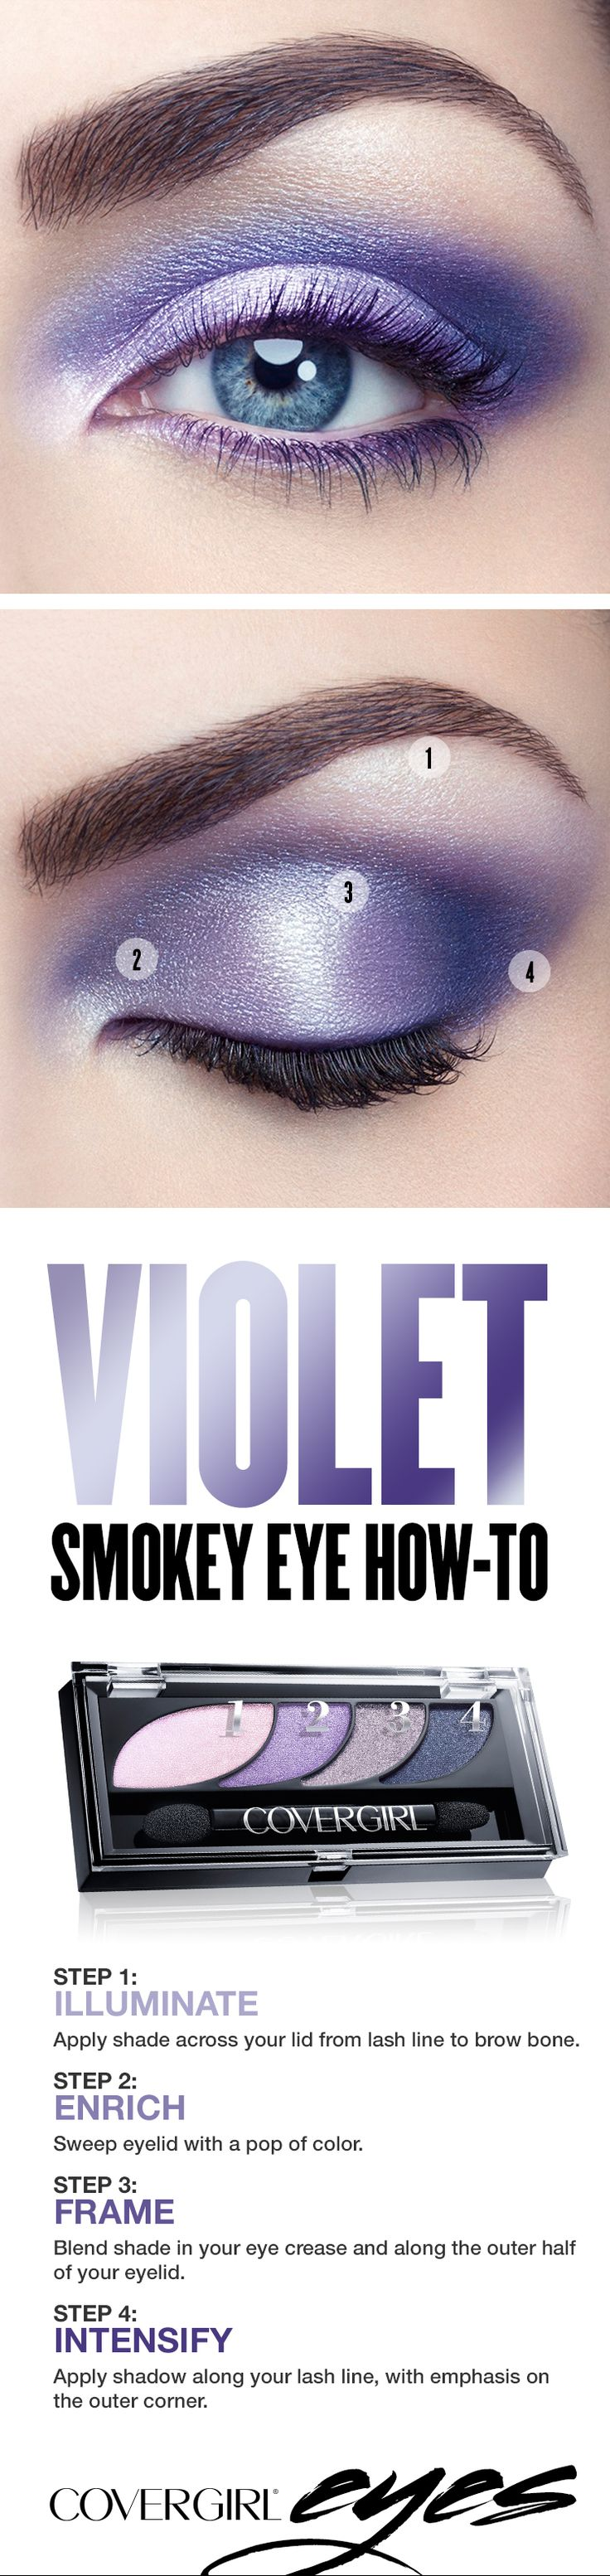 Try our simple step-by-step tutorial this holiday season for a dramatic violet smokey eye, featuring COVERGIRL Eyeshadow Quads in Va Va Violets. This makeup palette makes it easy to add shimmery color to your holiday look. Perfect for Christmas or New Year's Eve parties when you'd like to try something other than a standard black smokey eye.